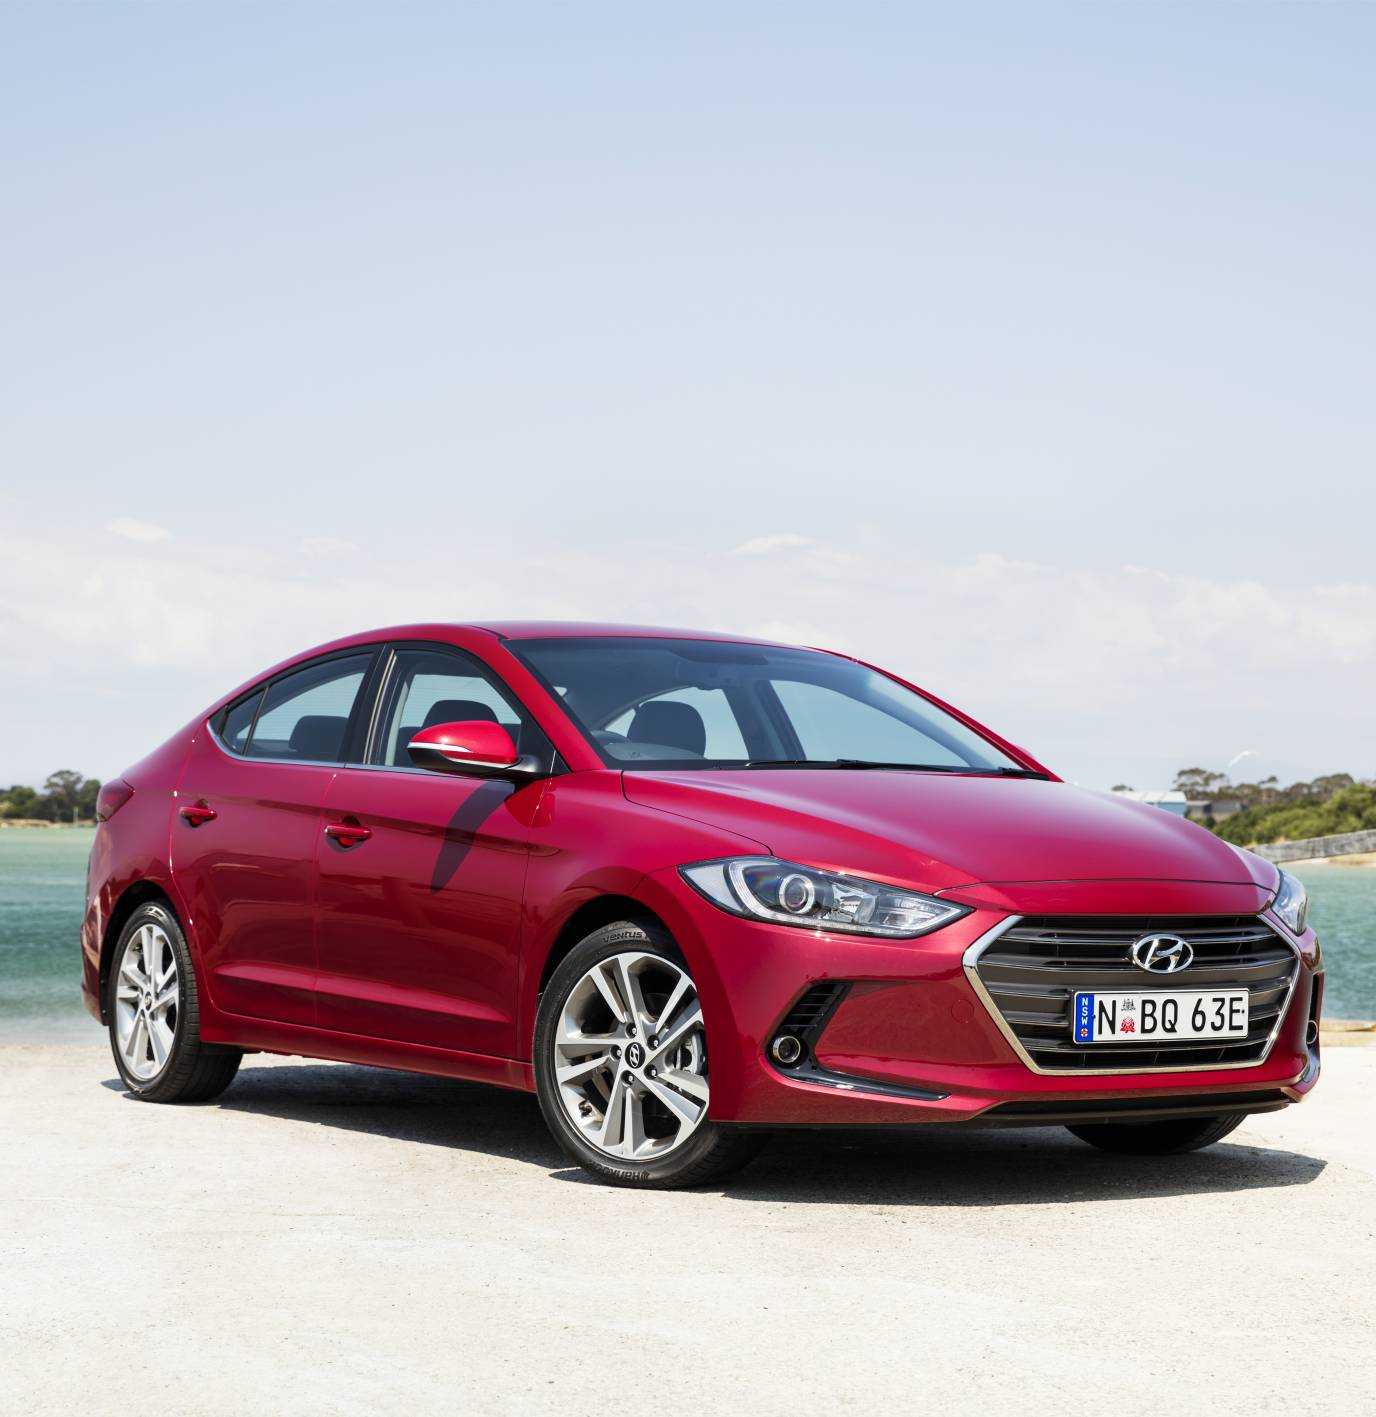 All-new 2016 Hyundai Elantra Comes Further Refined